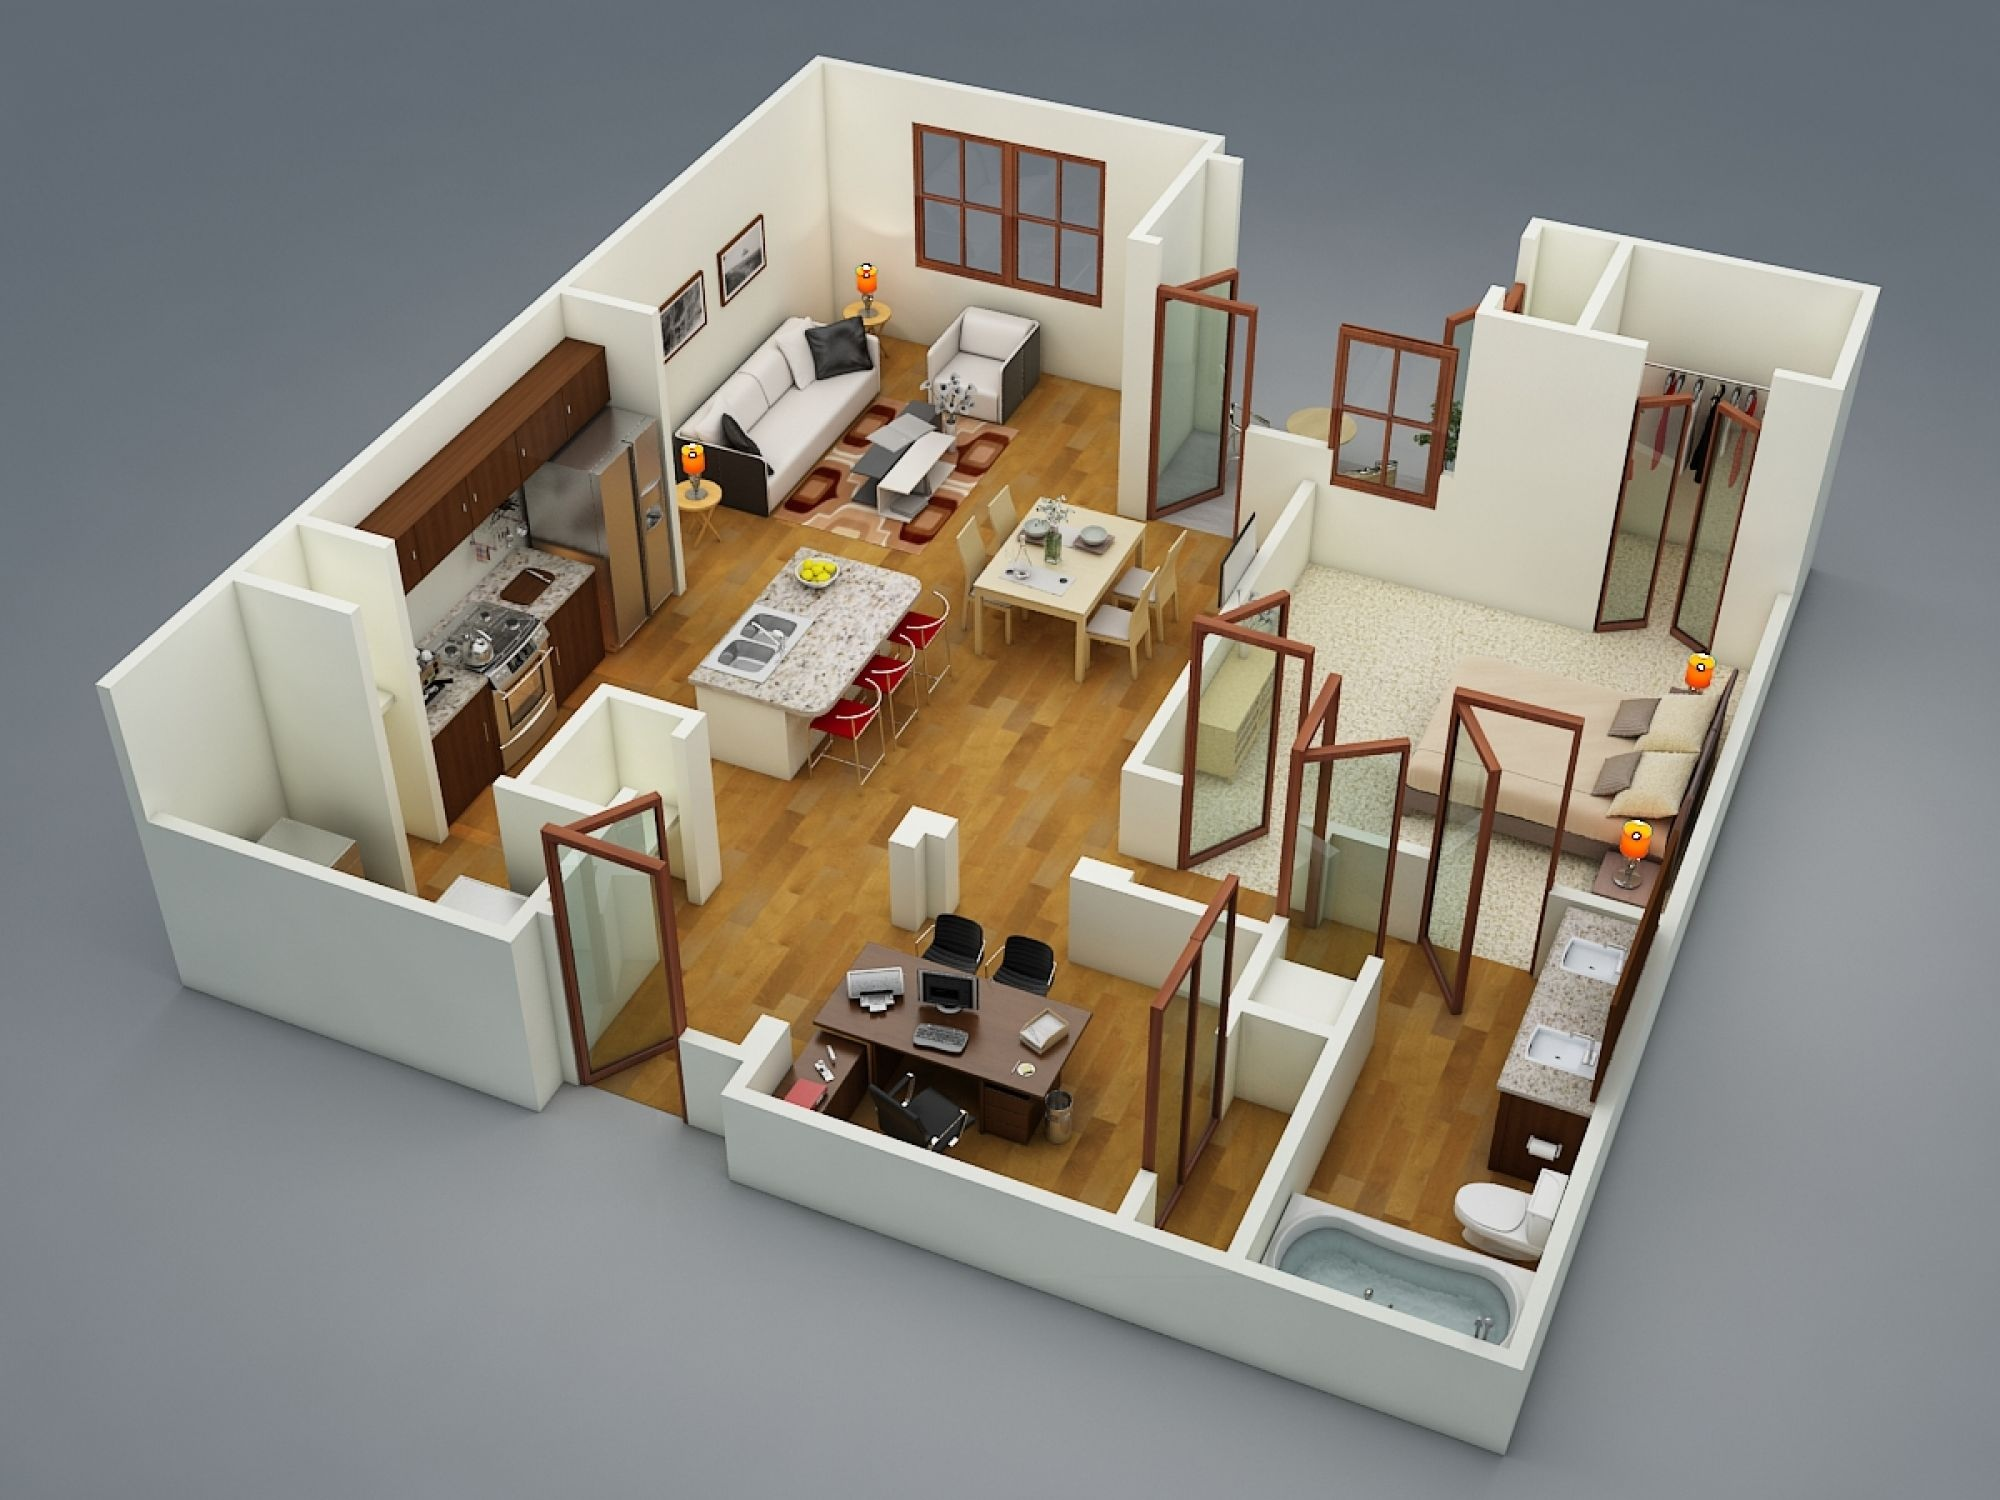 1 Bedroom Modern House Designs Of 1 Bedroom Apartment House Plans